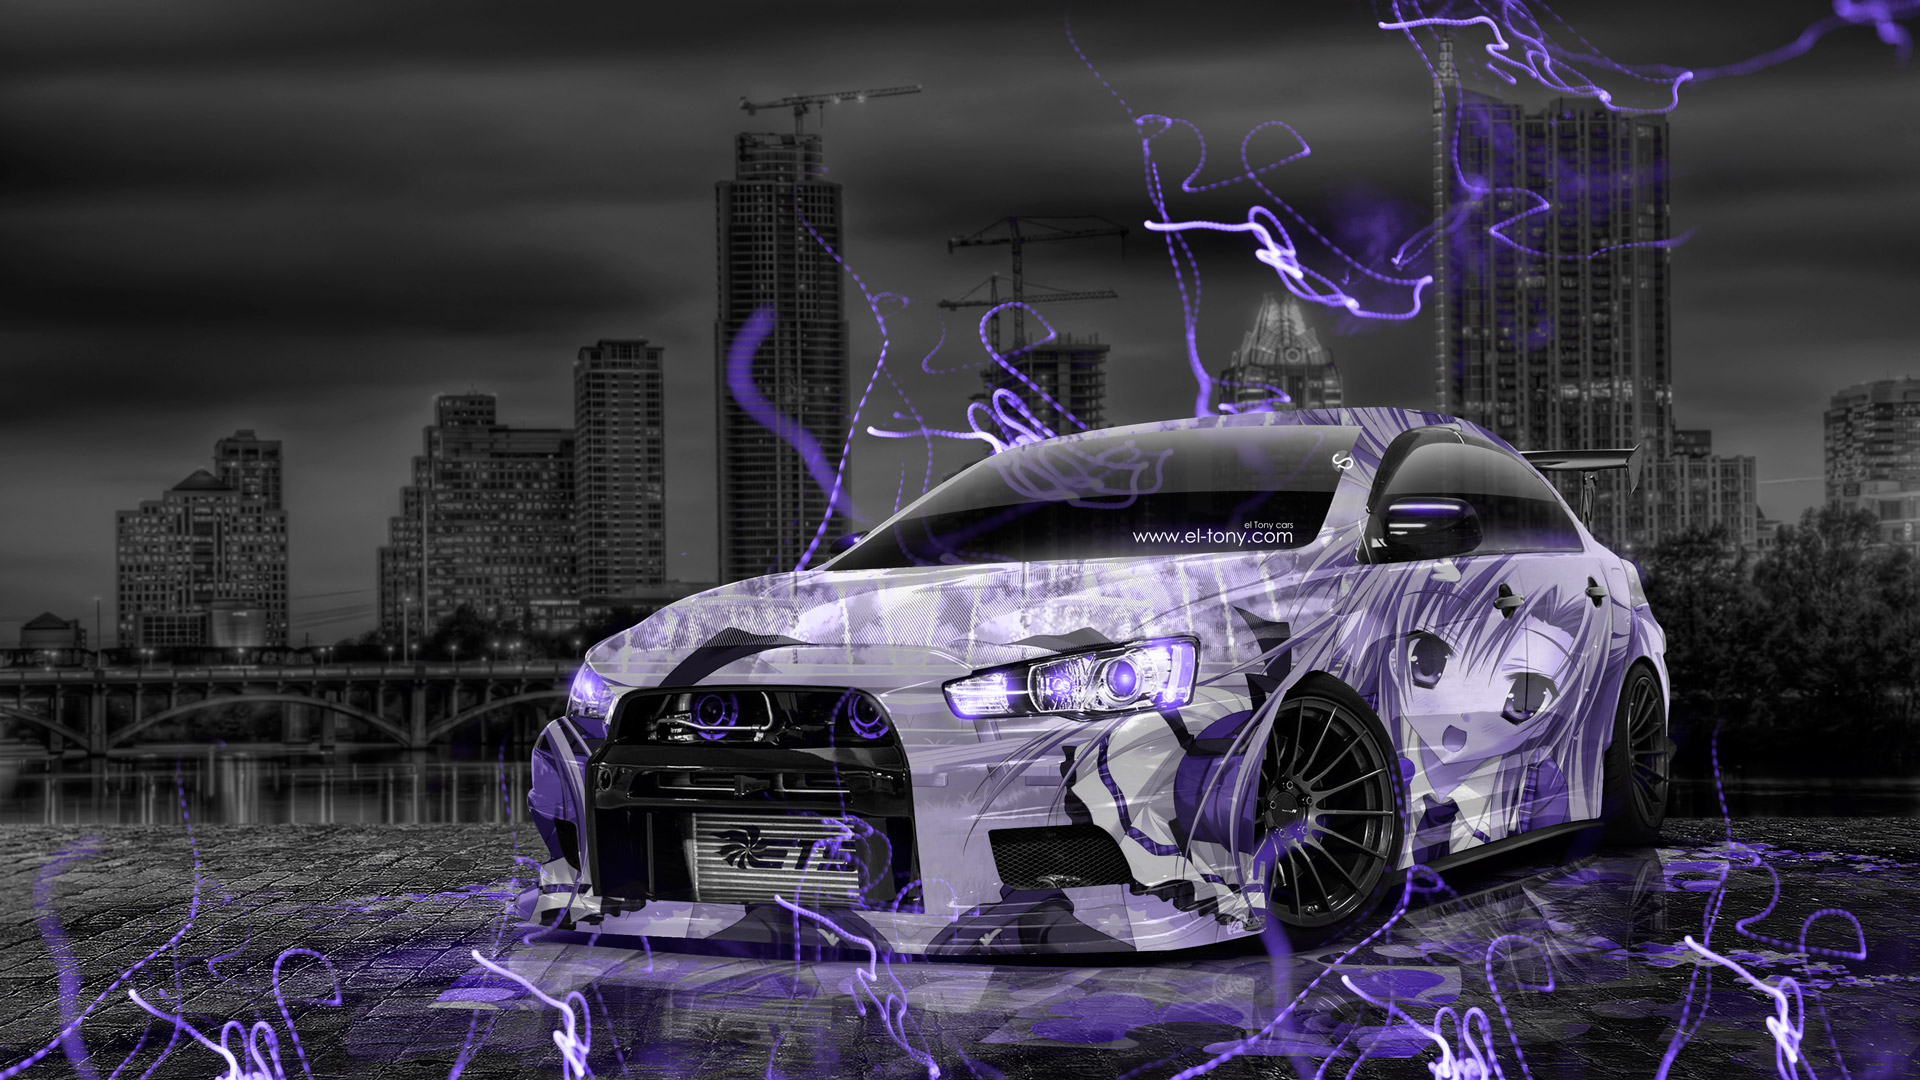 mitsubishi lancer evolution x tuning jdm anime city car